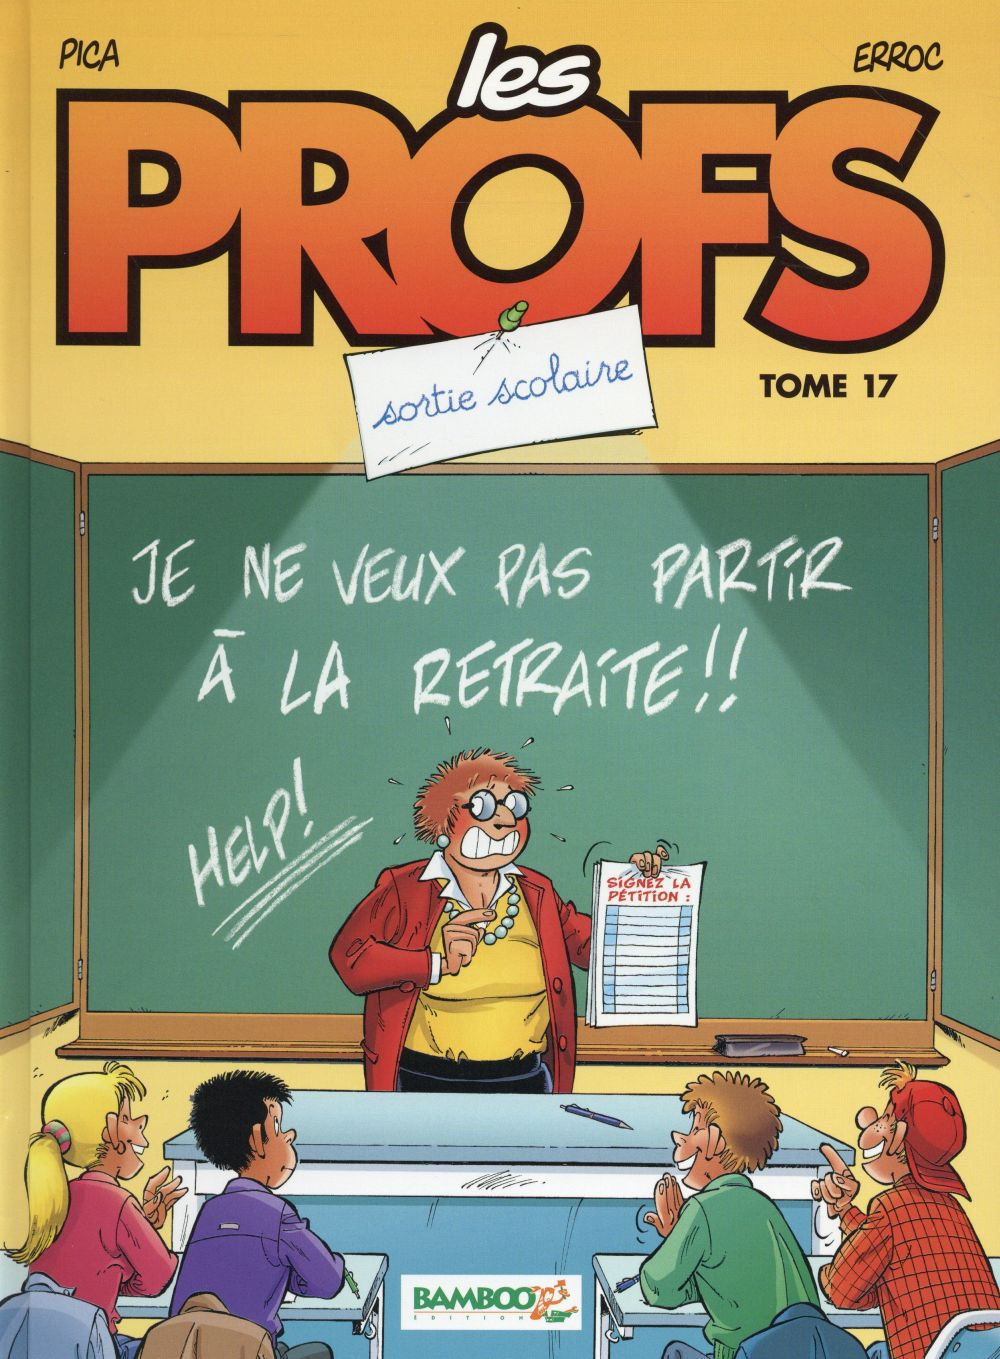 LES PROFS - TOME 17 - SORTIE SCOLAIRE Pica Bamboo